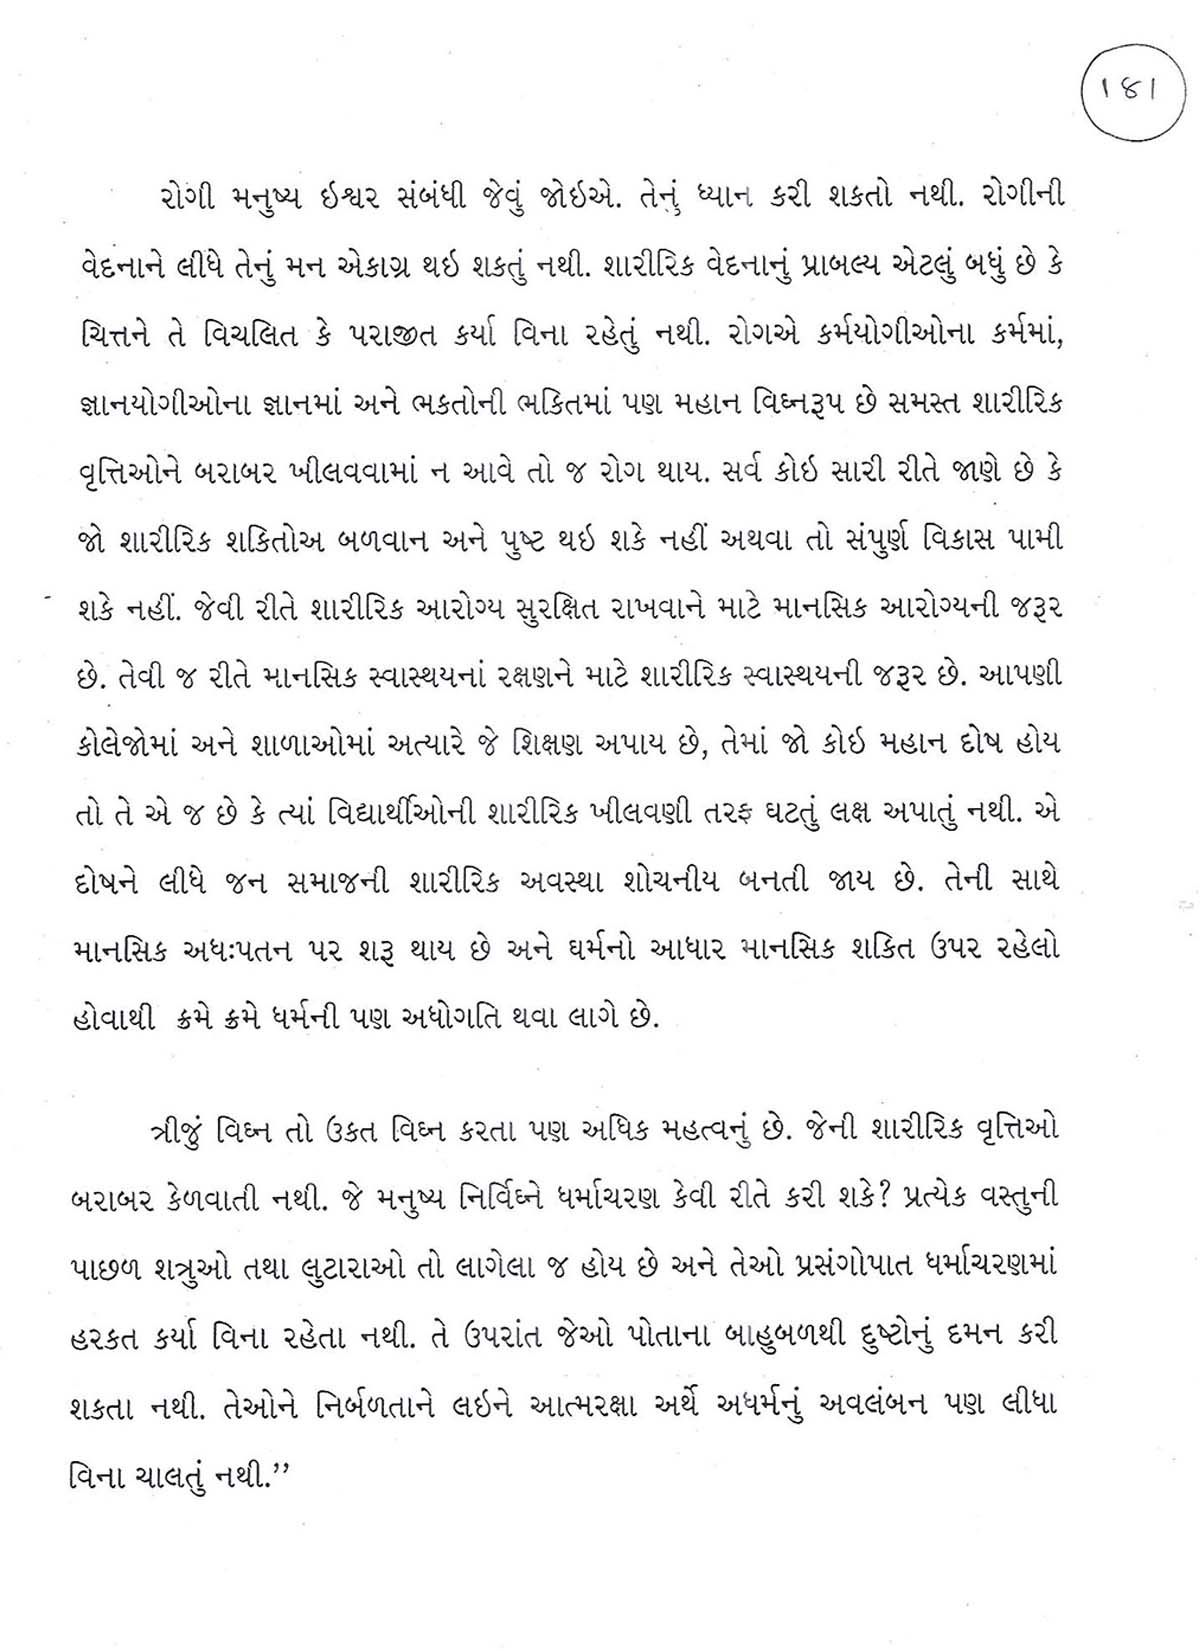 gandhi essay in gujarati essay on mahatma gandhi in hindi hd image of few words by sardar patel in gujarati mahatmagandhi and mahatma gandhi essay